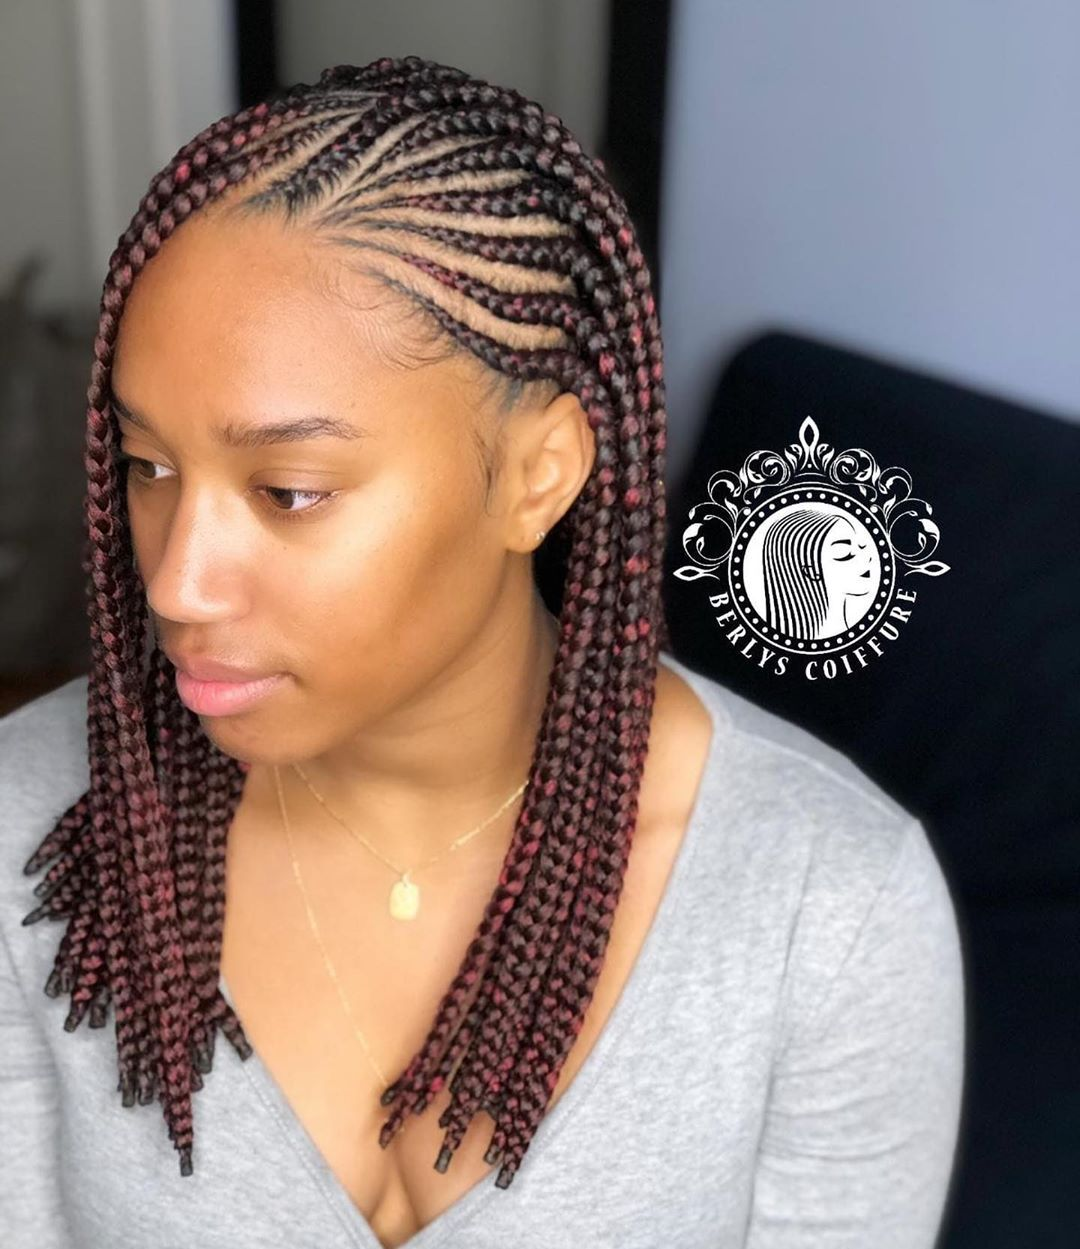 Berlys Coiffure On Instagram Cliente Satisfaite Fulanibraids 3 Paquets De Meches Xp Braided Hairstyles Braided Cornrow Hairstyles Cornrow Hairstyles